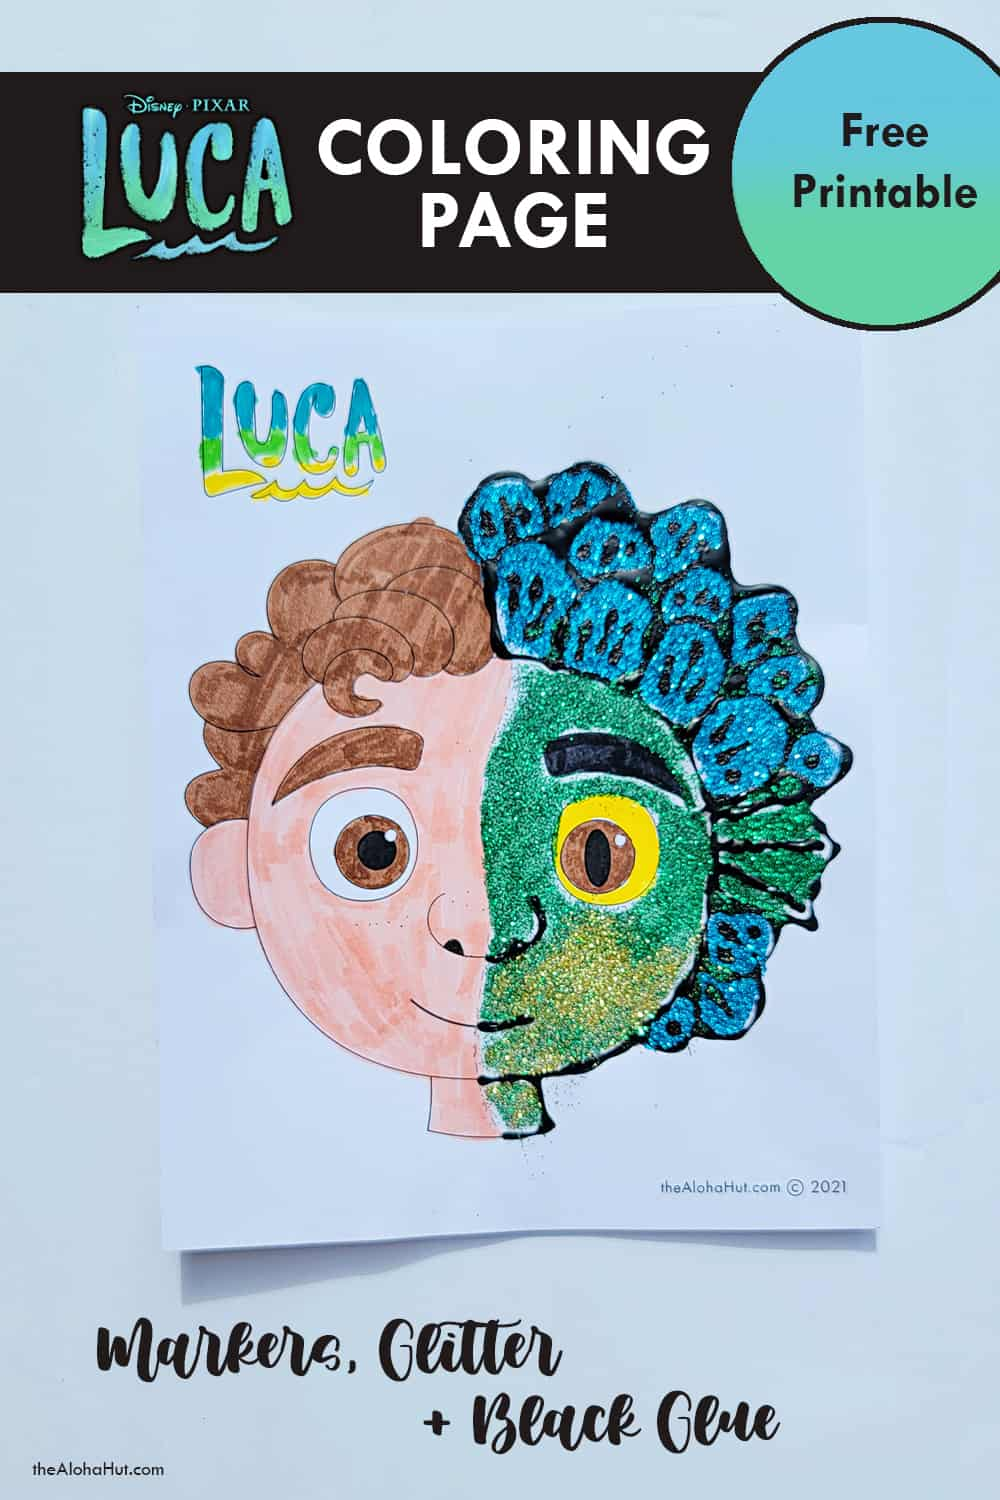 Disney Pixar LUCA coloring page by the Aloha Hut